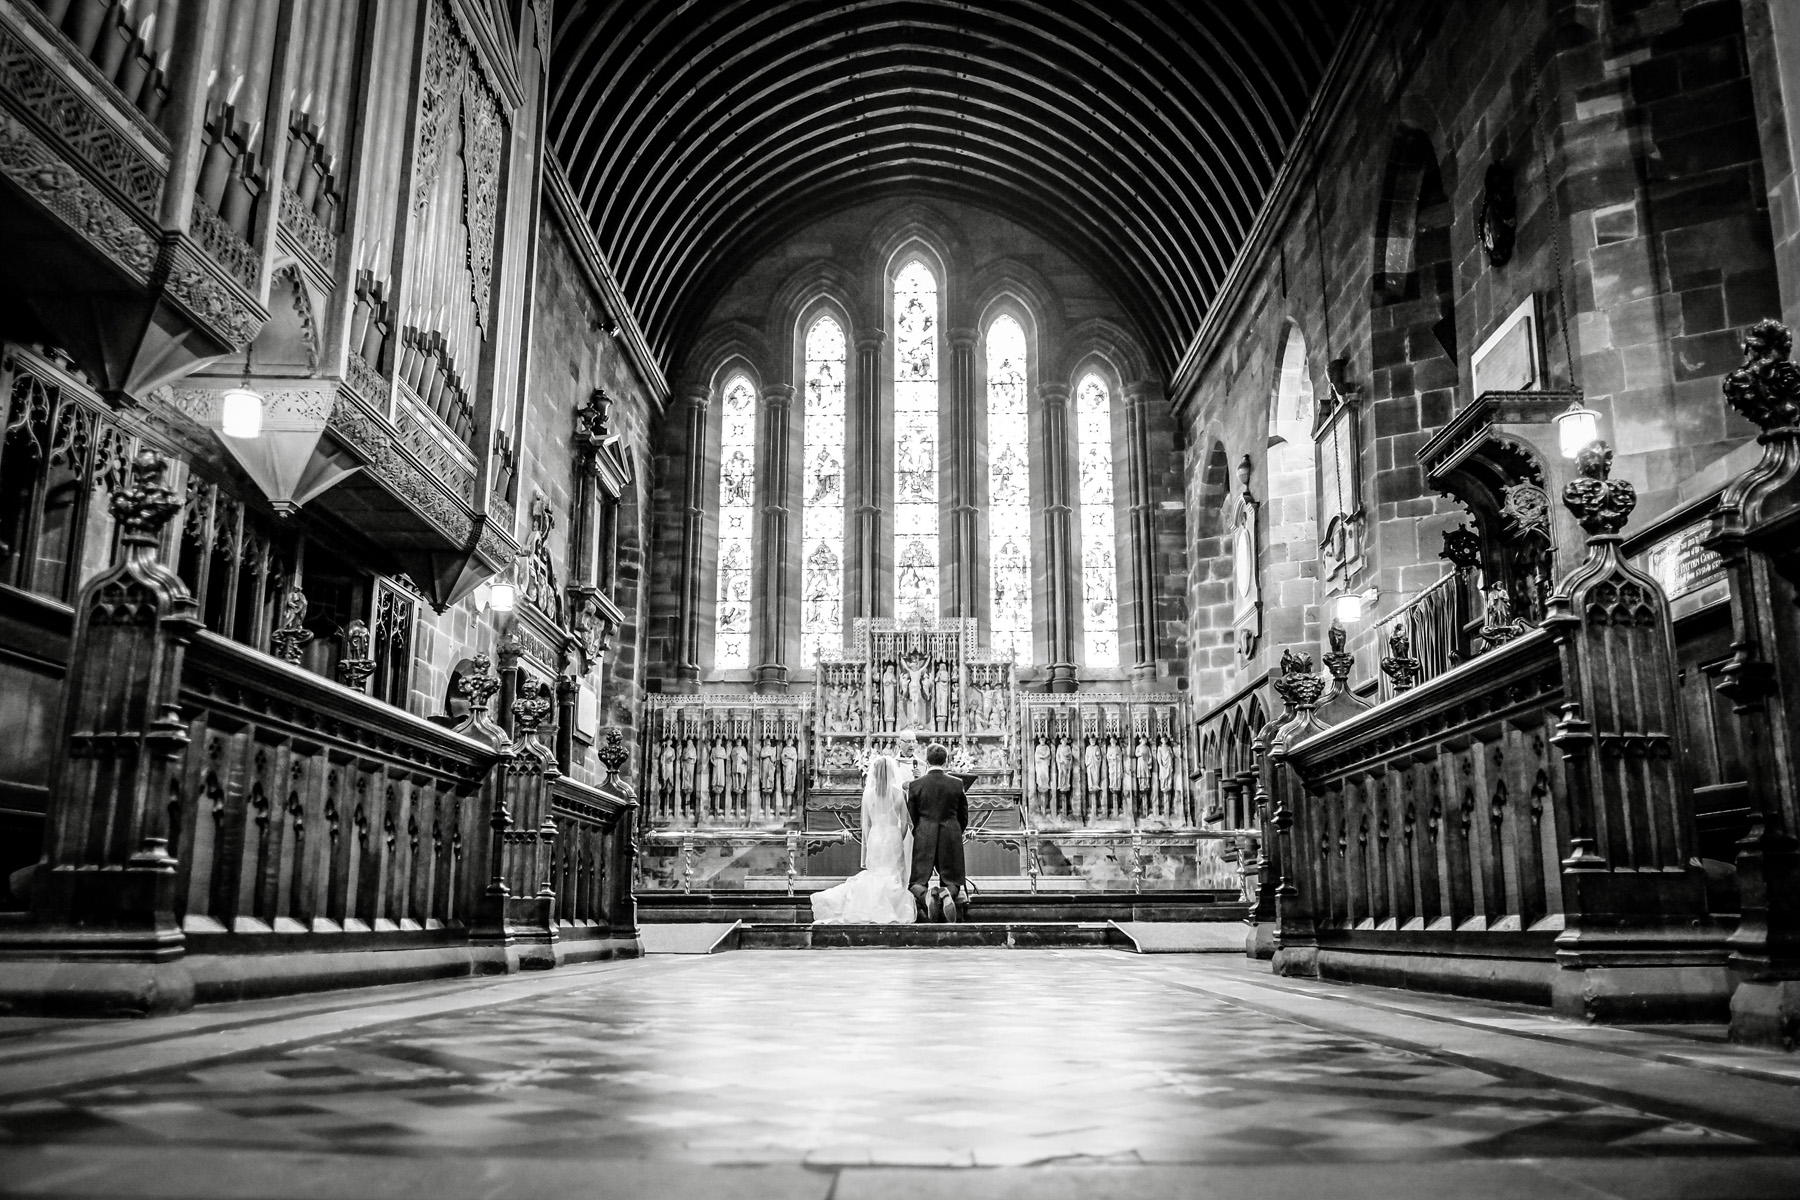 Epic church with a bride and groom getting married during a summer wedding.